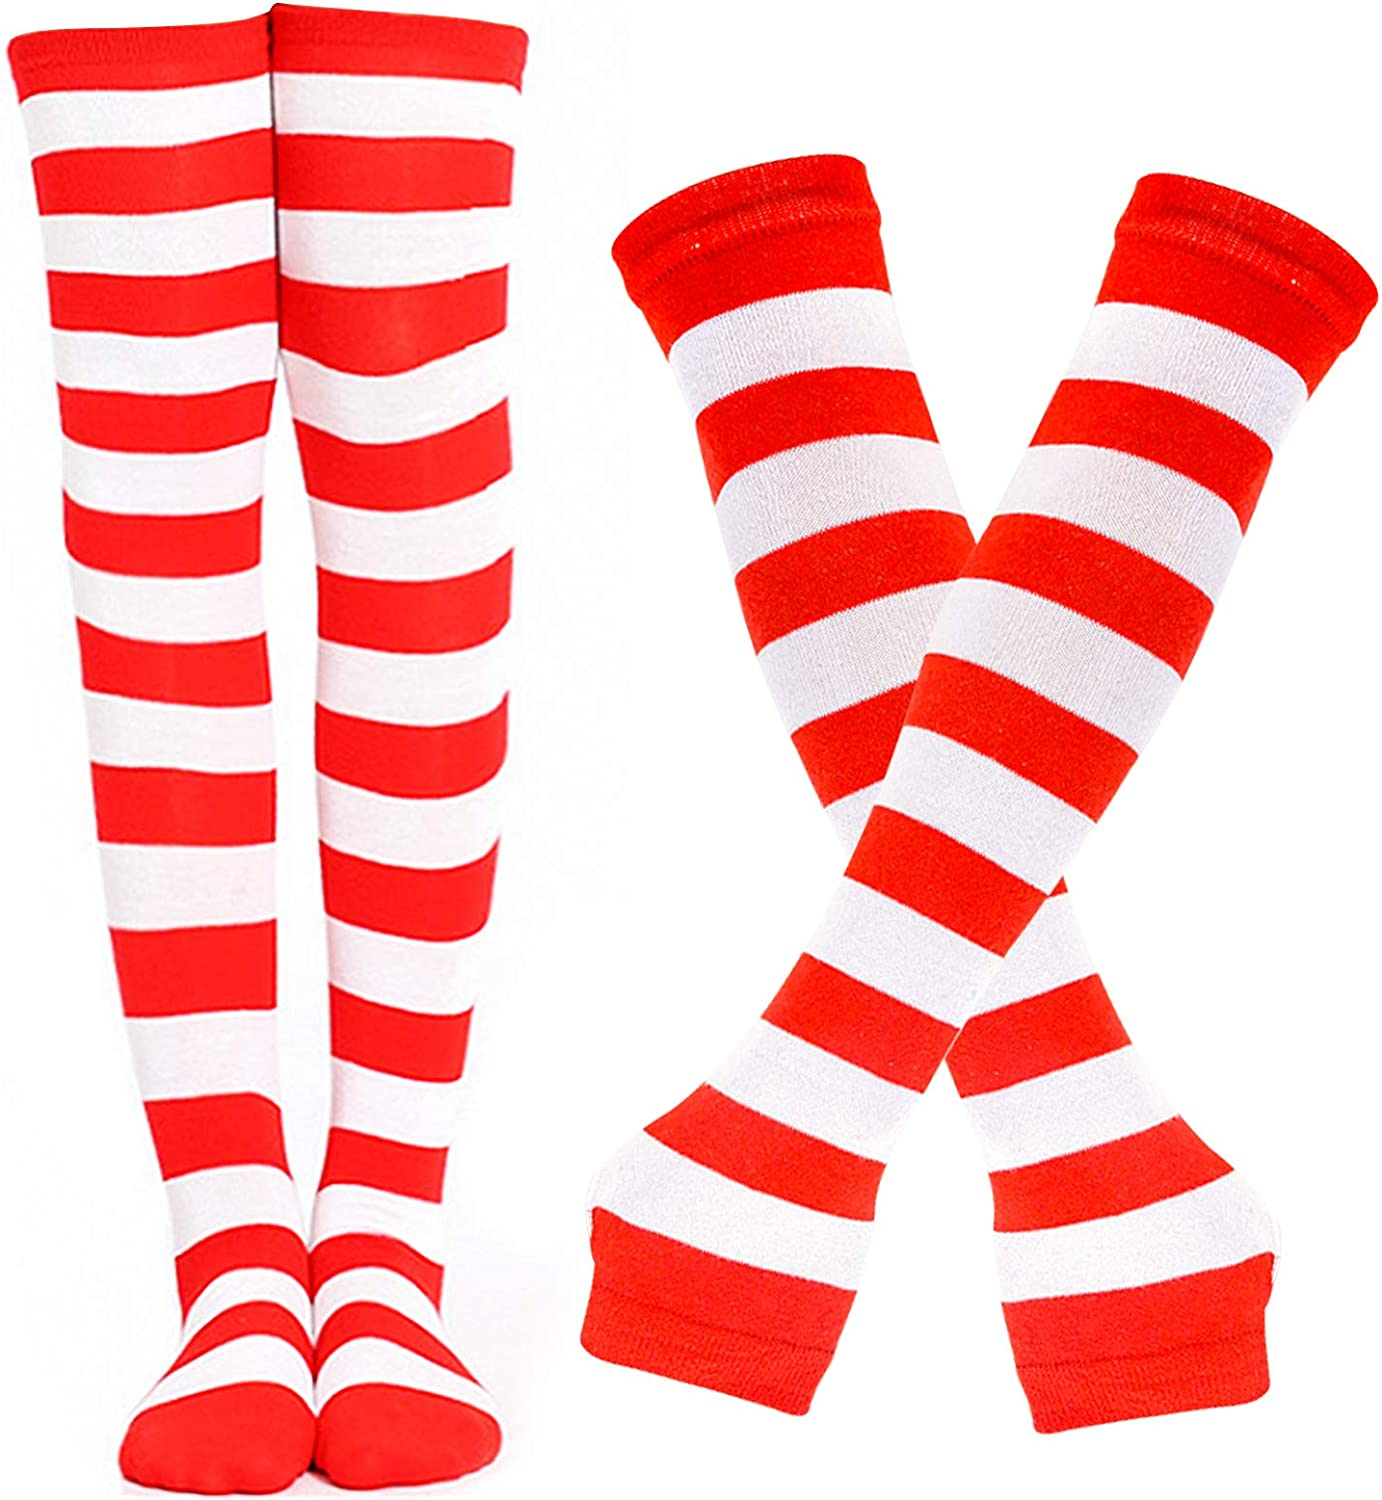 BigOtters Red and White Striped Socks, 2PCS Christmas Red and White Clothes Including Striped Knee High Socks Long Arm Warmer Gloves for Adults and Teens Christmas Halloween Party Costume